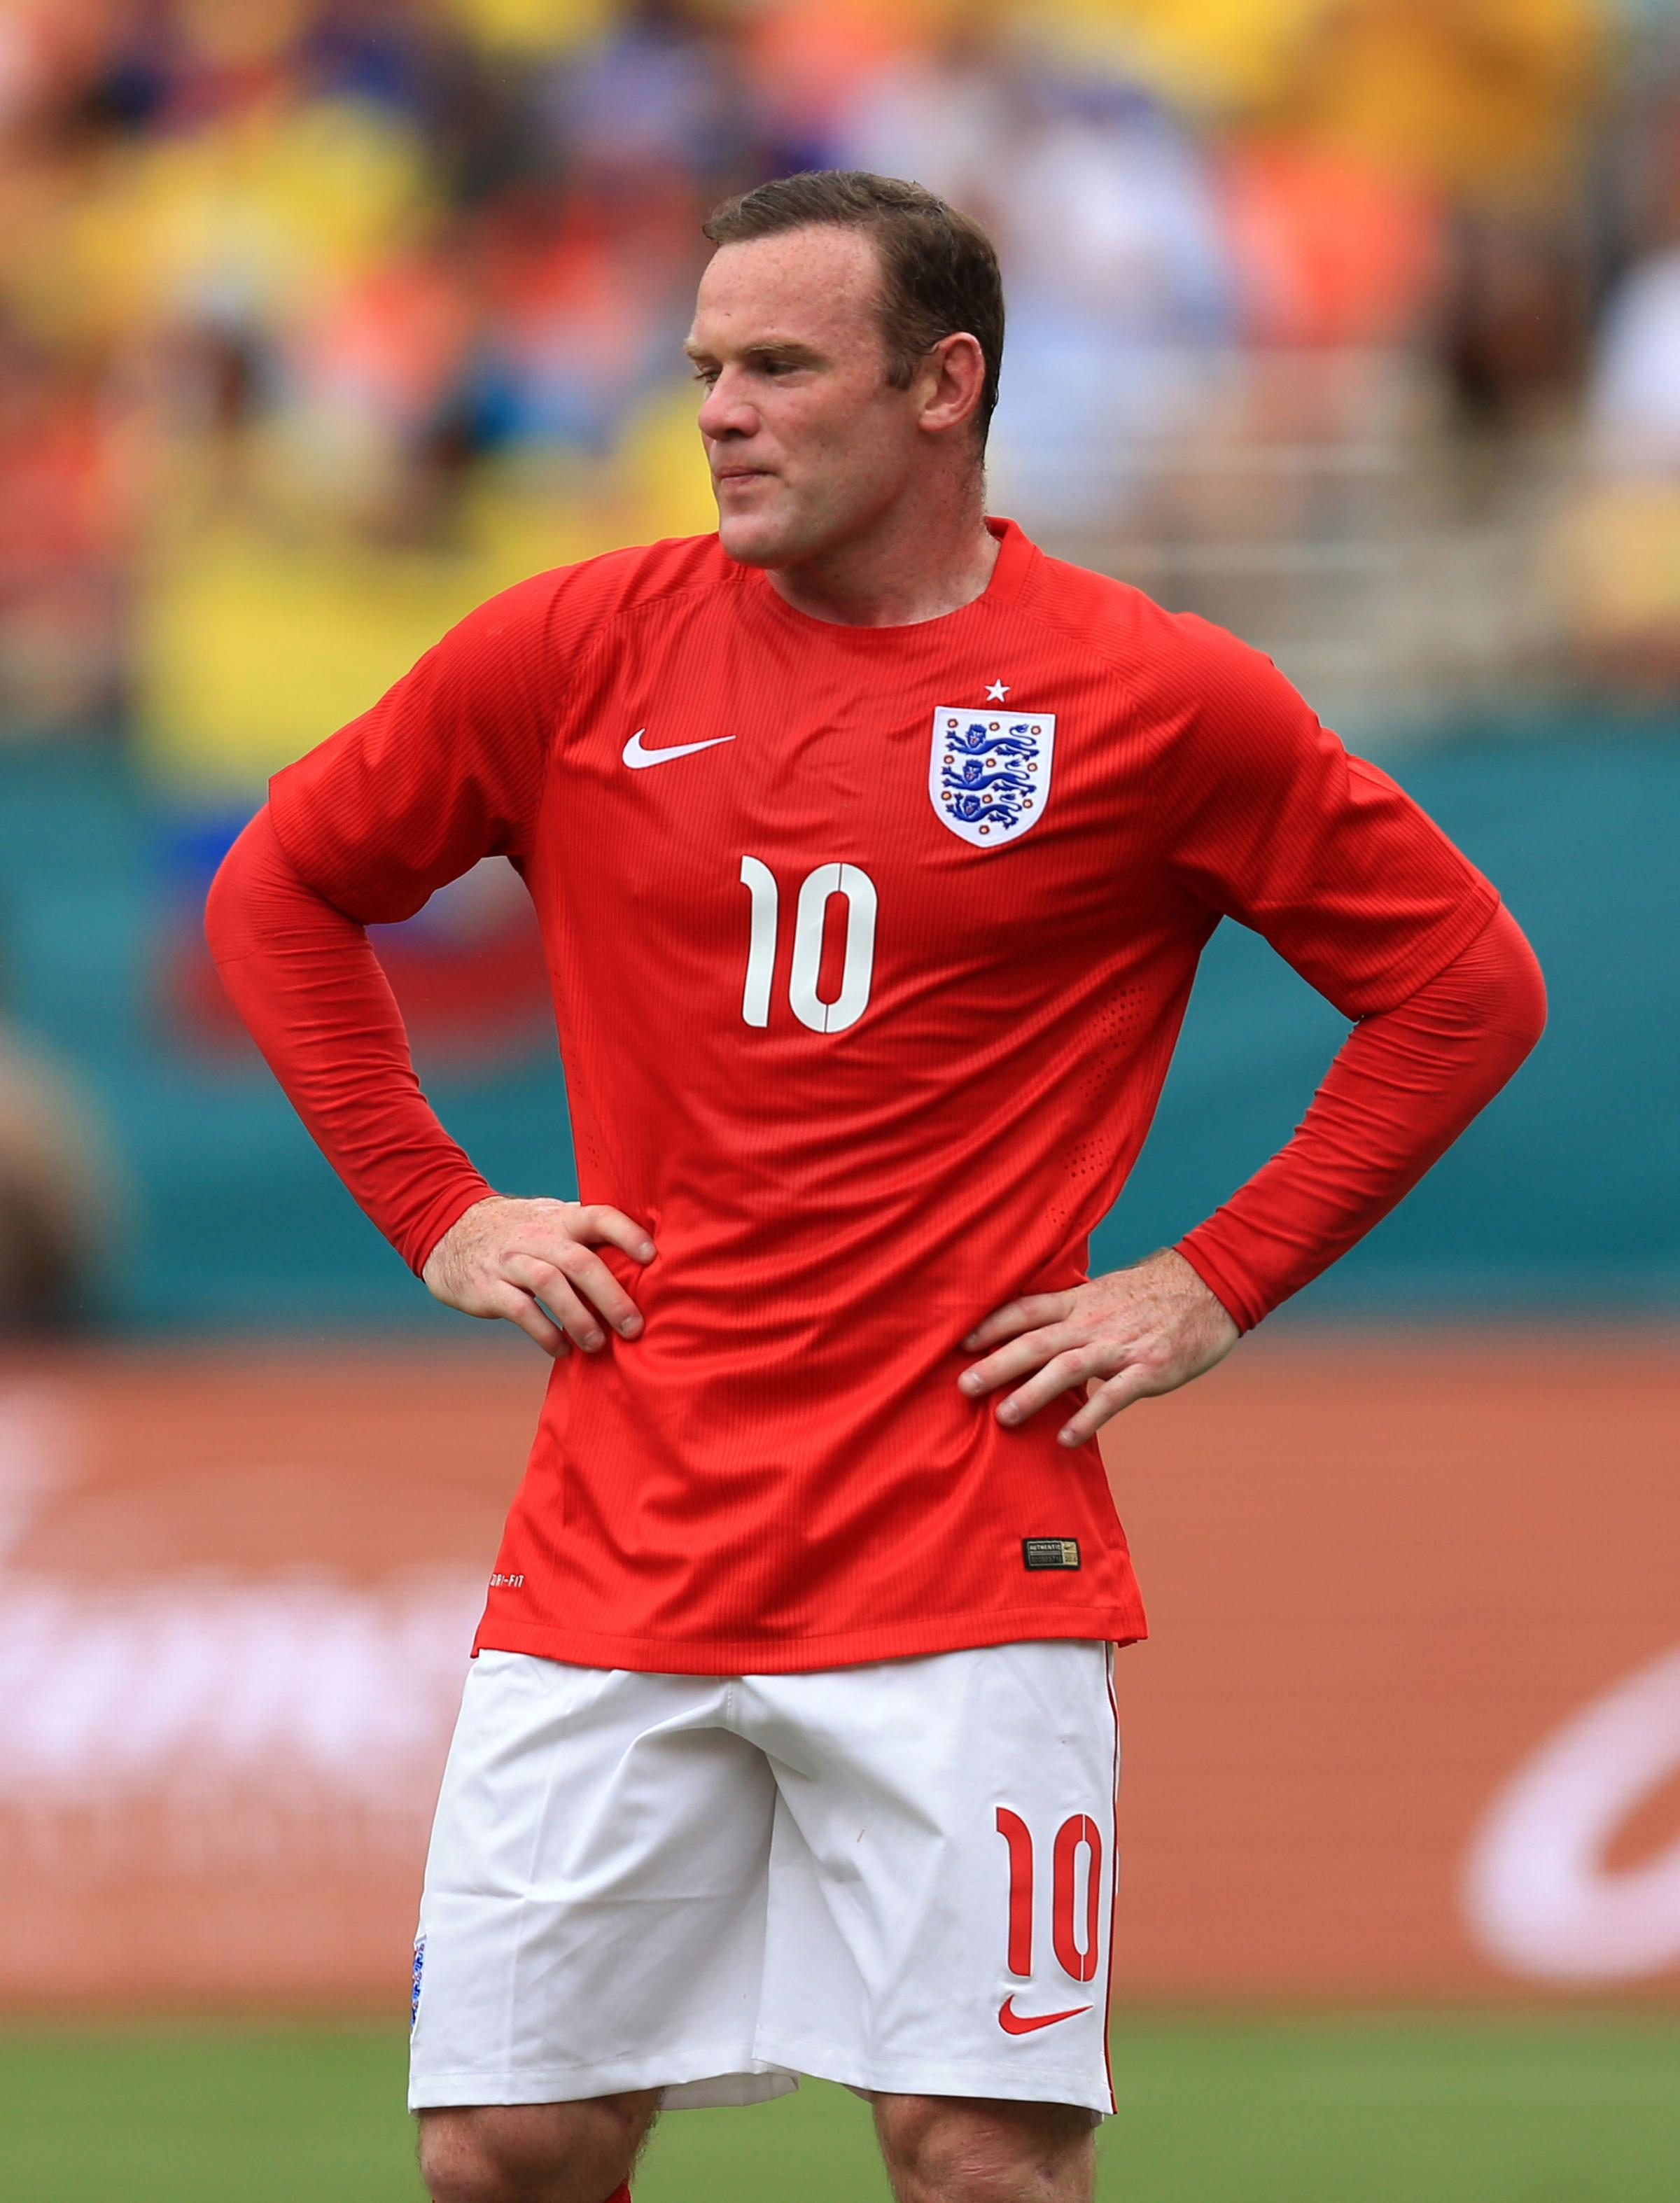 Wayne Rooney, will he be in the England team to face the Italians